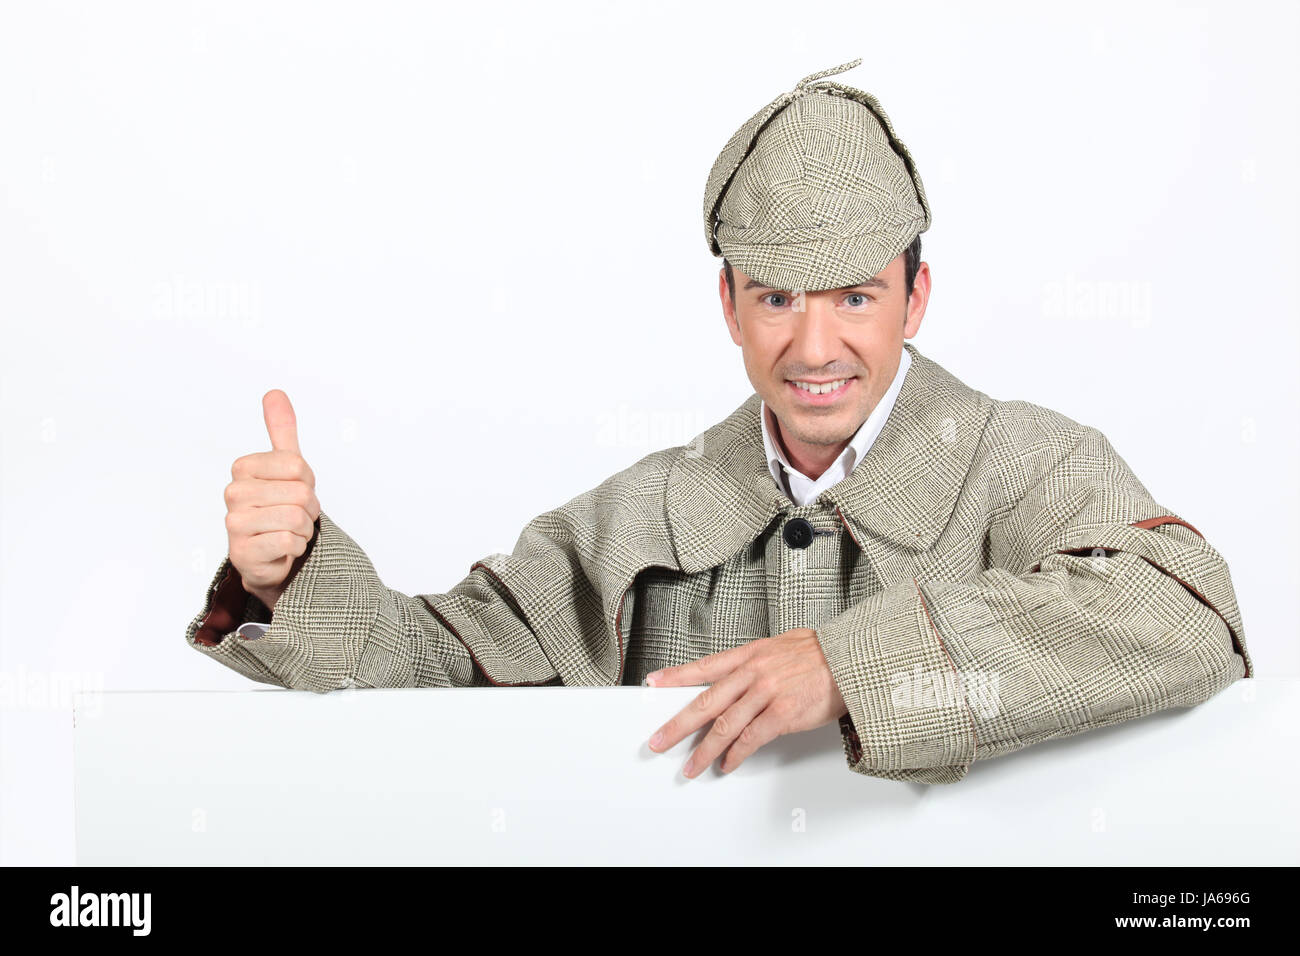 male, masculine, costume, dress, fancy, man, gown, laugh, laughs, laughing, - Stock Image